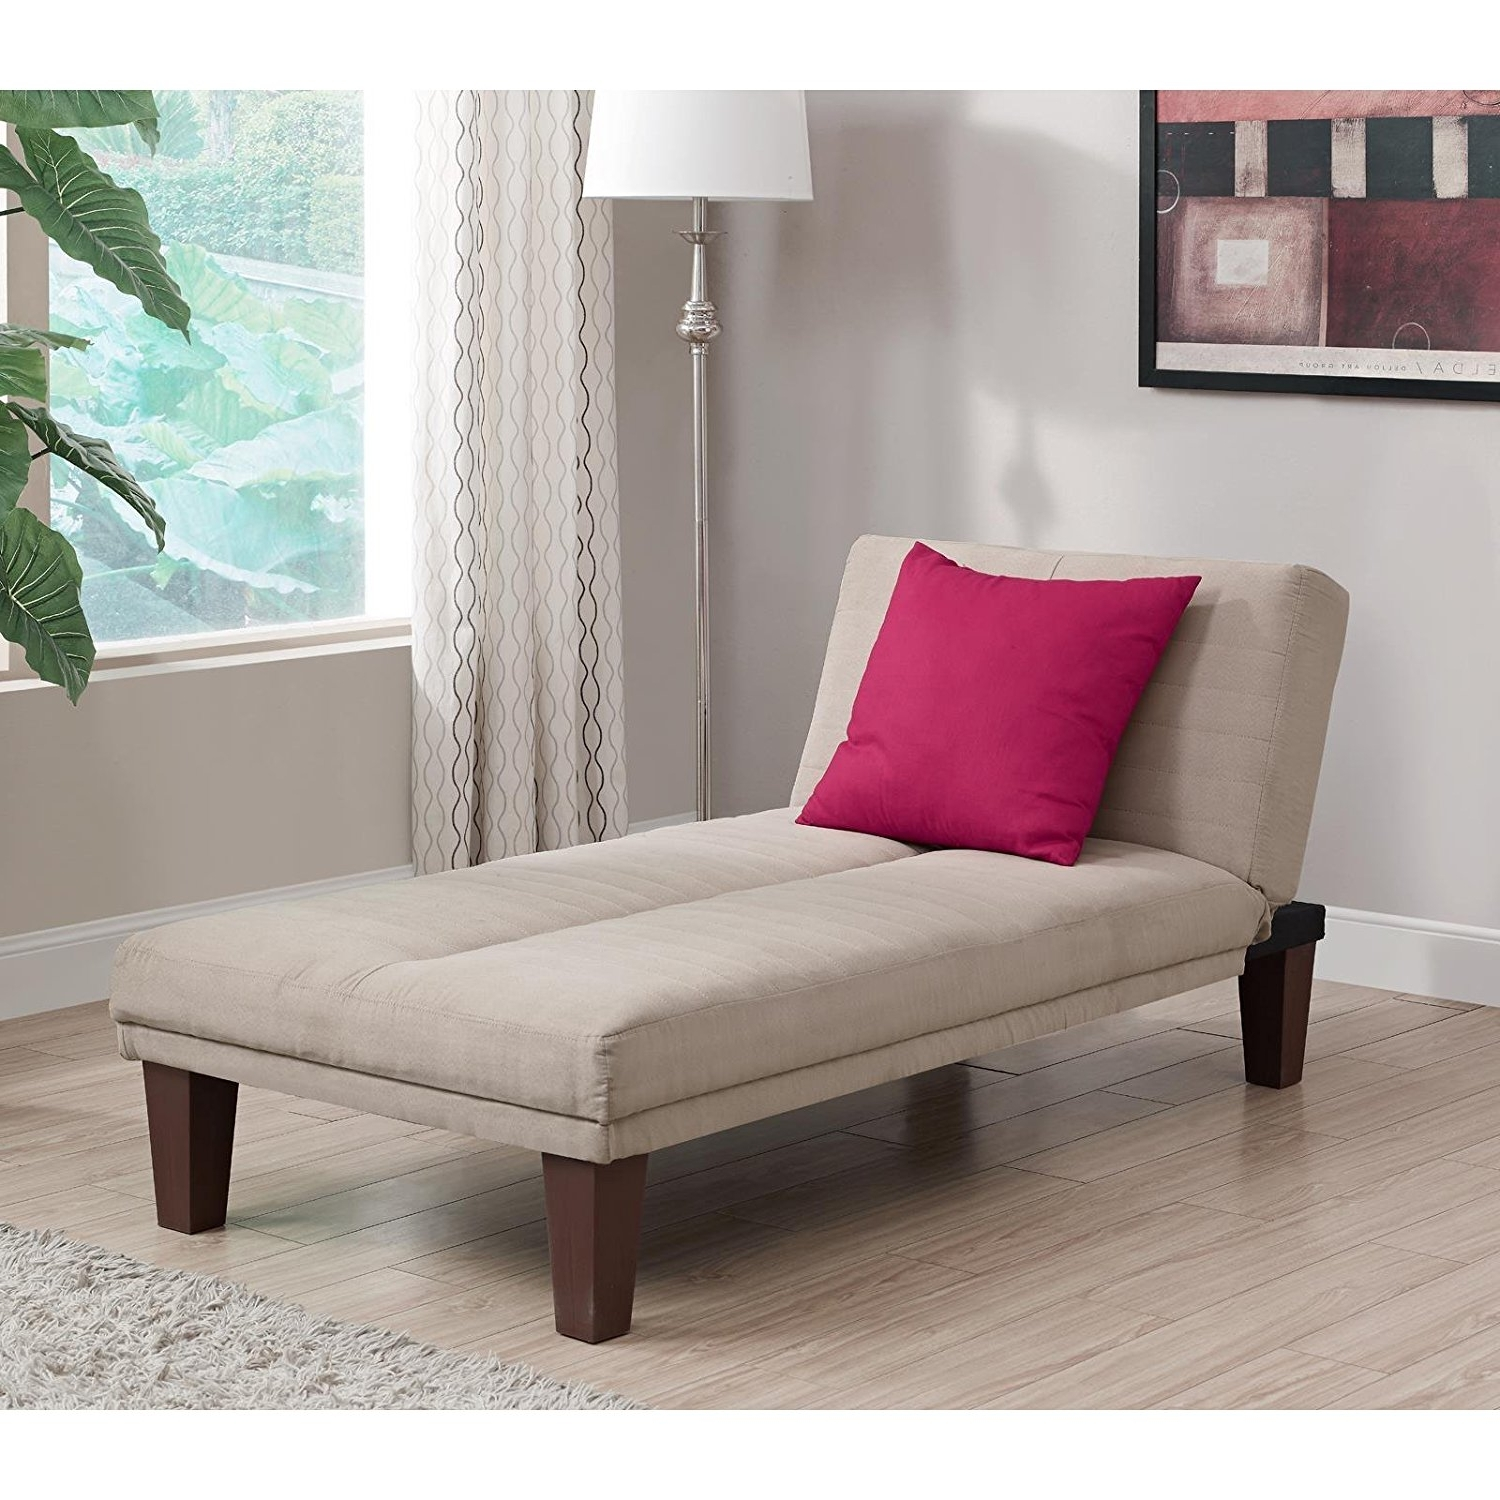 Favorite Amazon: Contemporary Chaise Lounge – Seat Couch Sleeper Indoor Inside Chaise Lounge Beds (View 9 of 15)